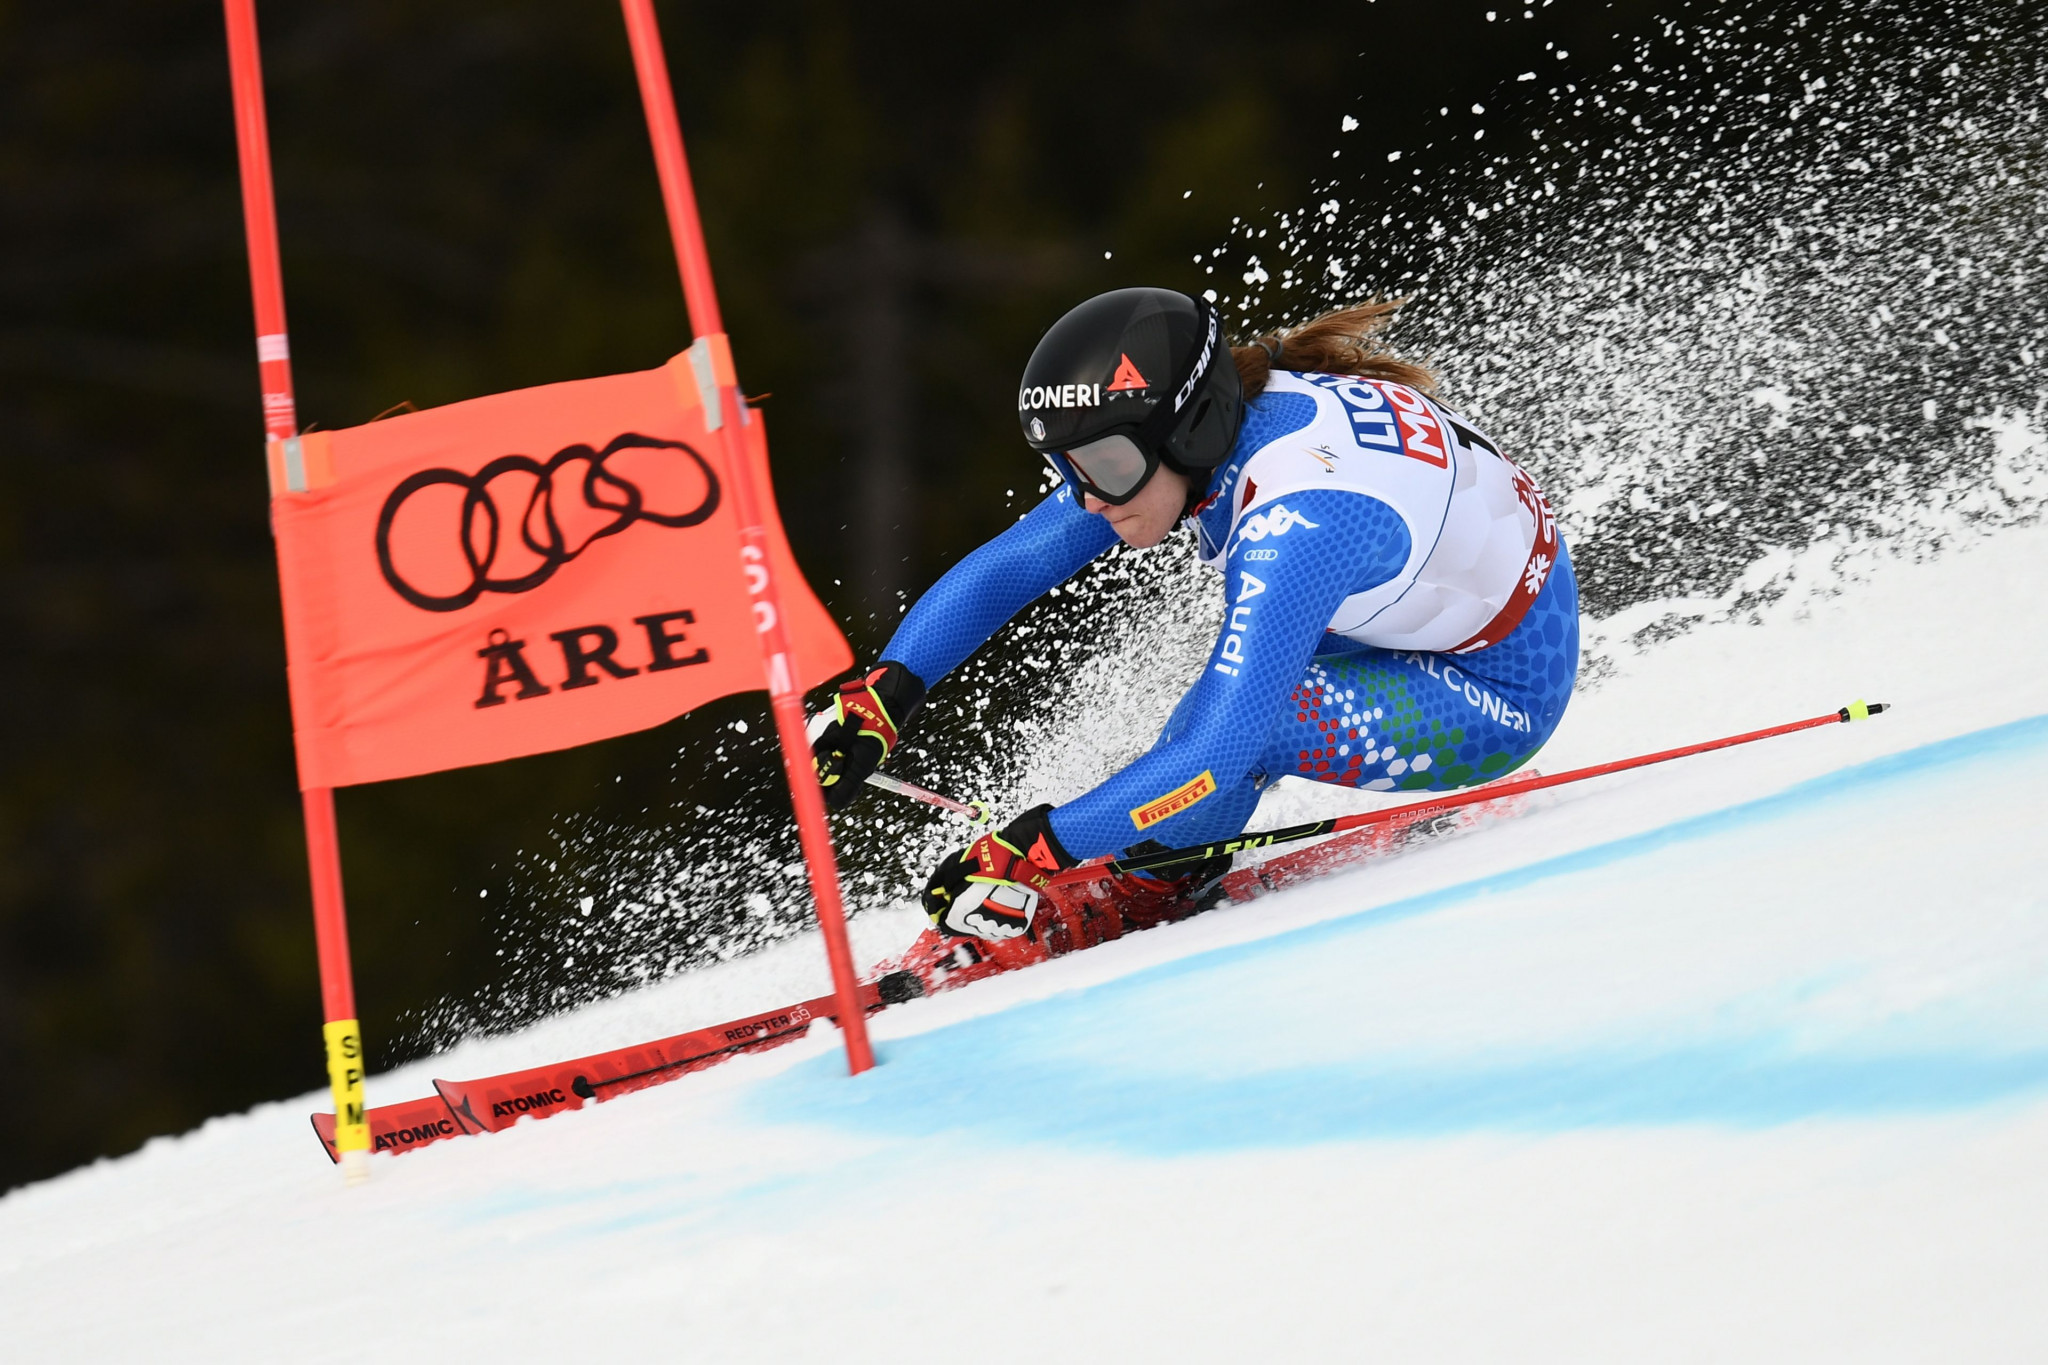 Amid difficult conditions the Olympic downhill champion Sofia Goggia was among several athletes to crash out ©Getty Images